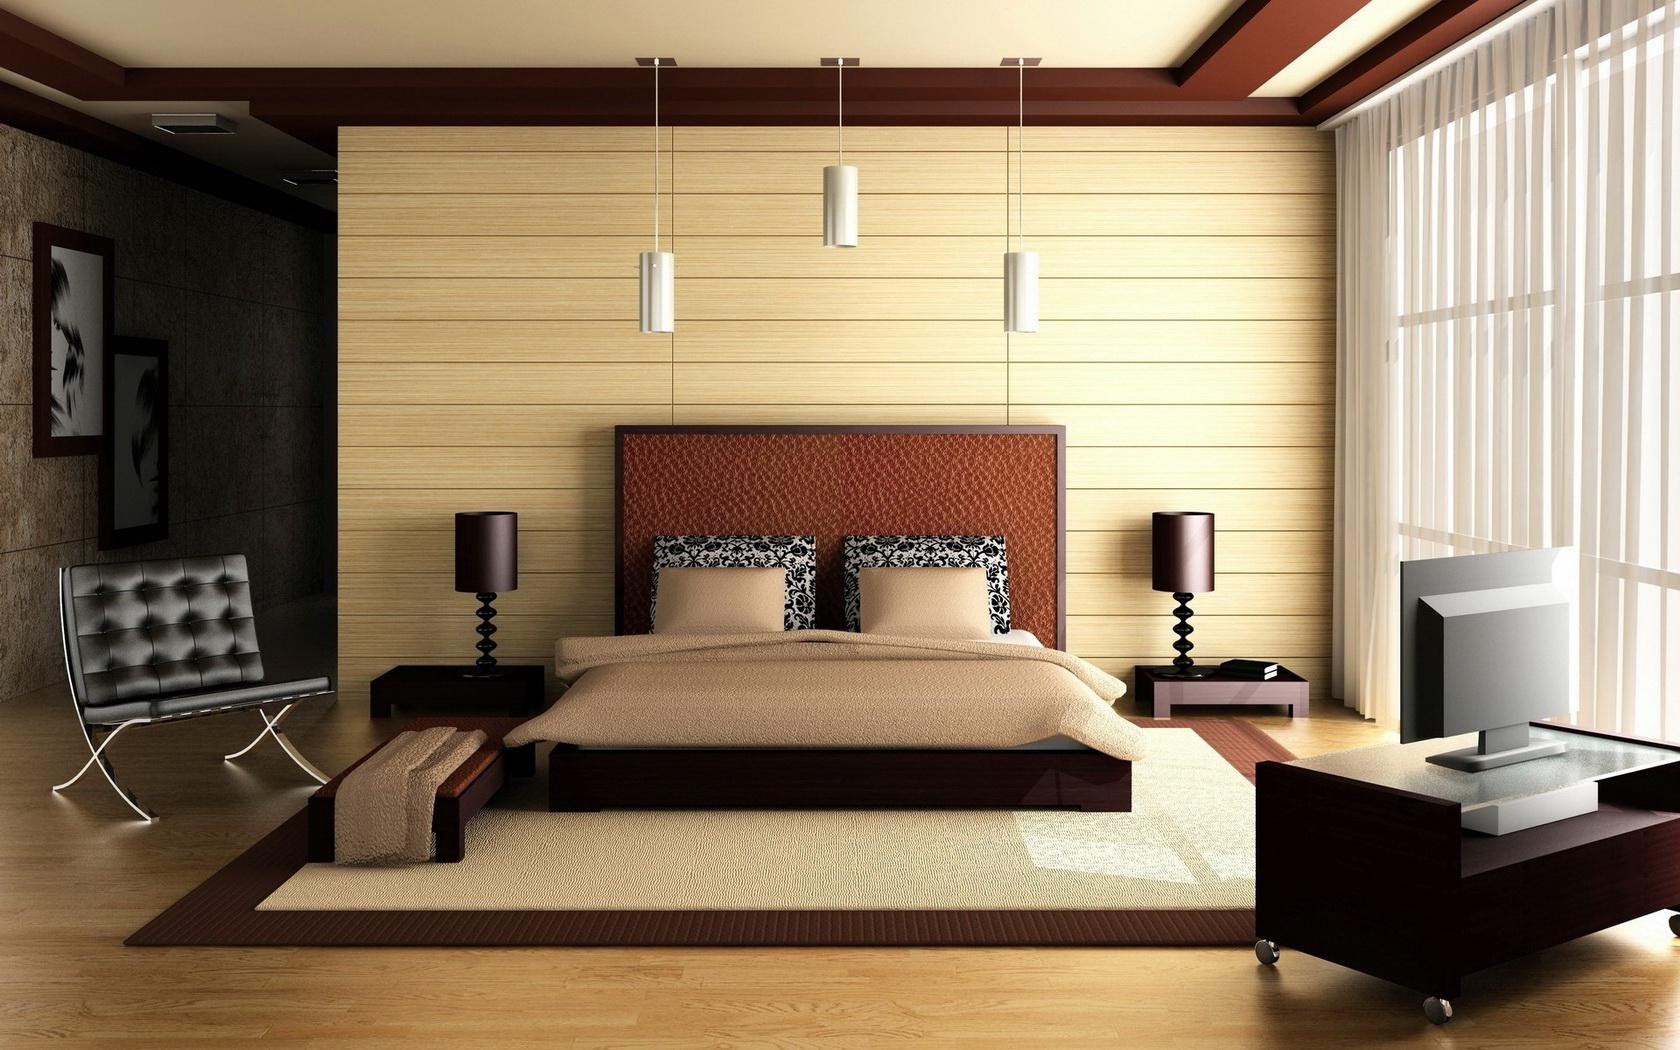 HD Bedroom Bed Architecture Interior Design High ...